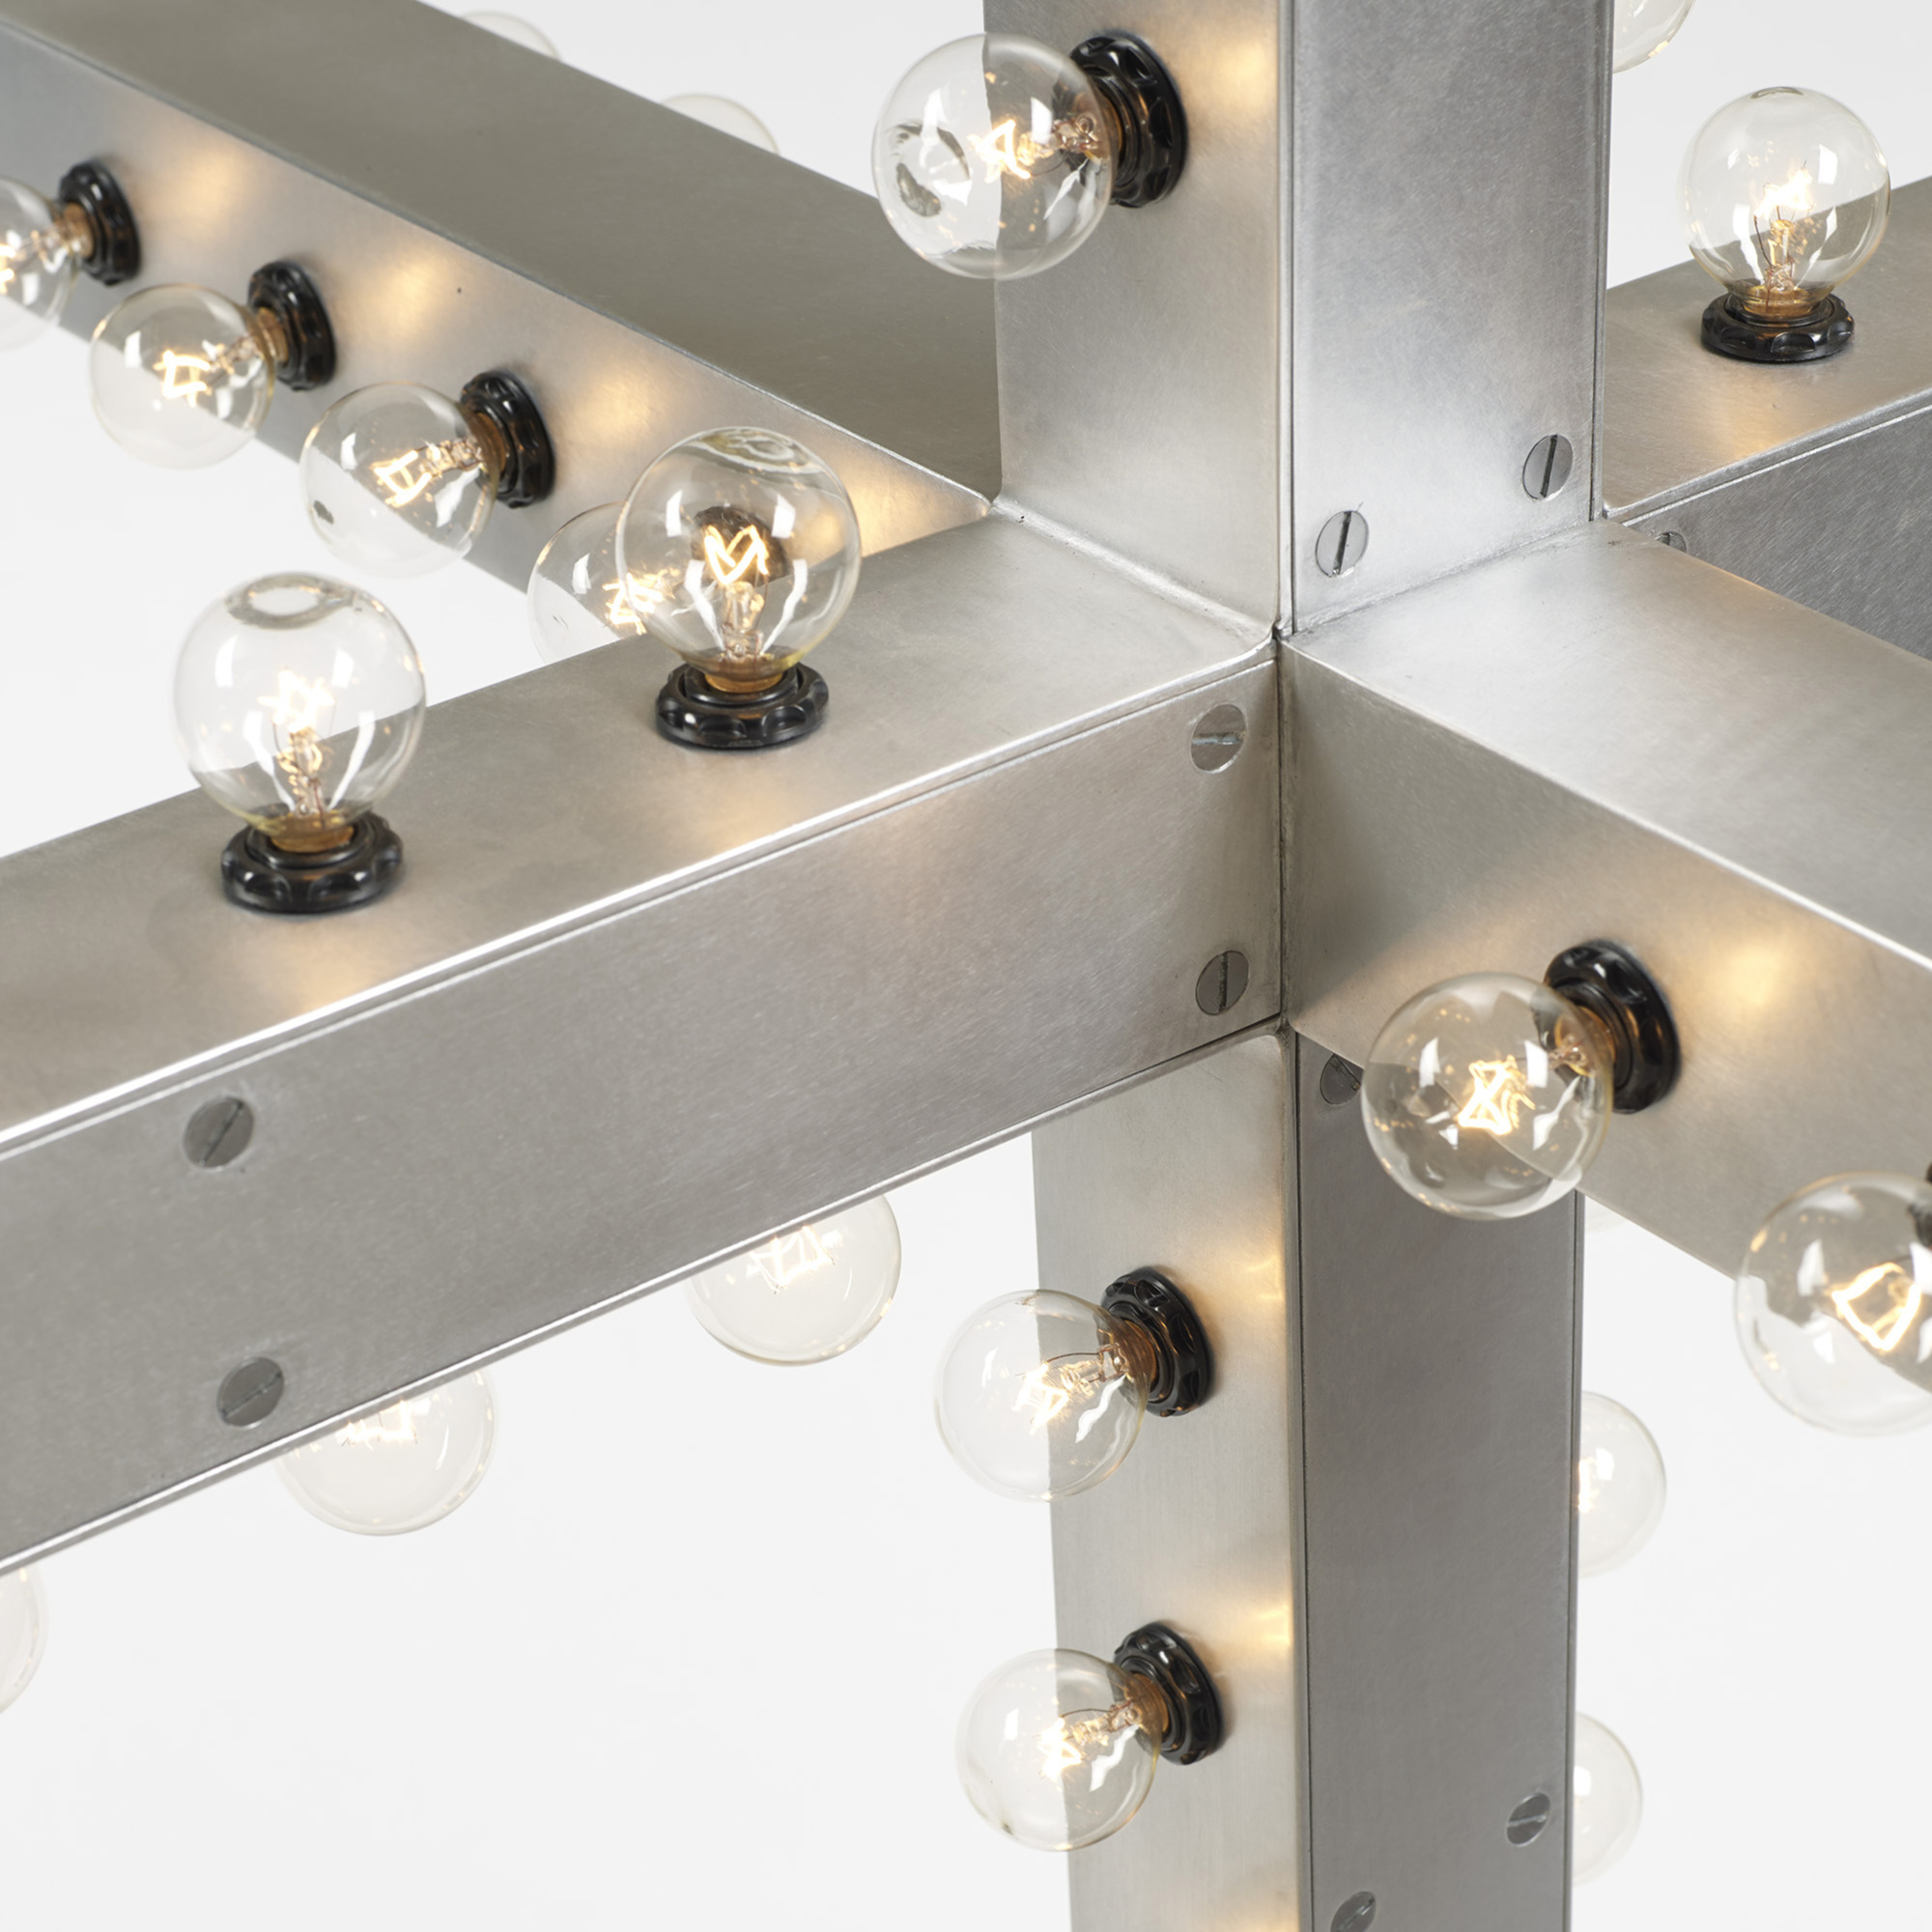 411: Downtown / Intersection chandelier (2 of 2)